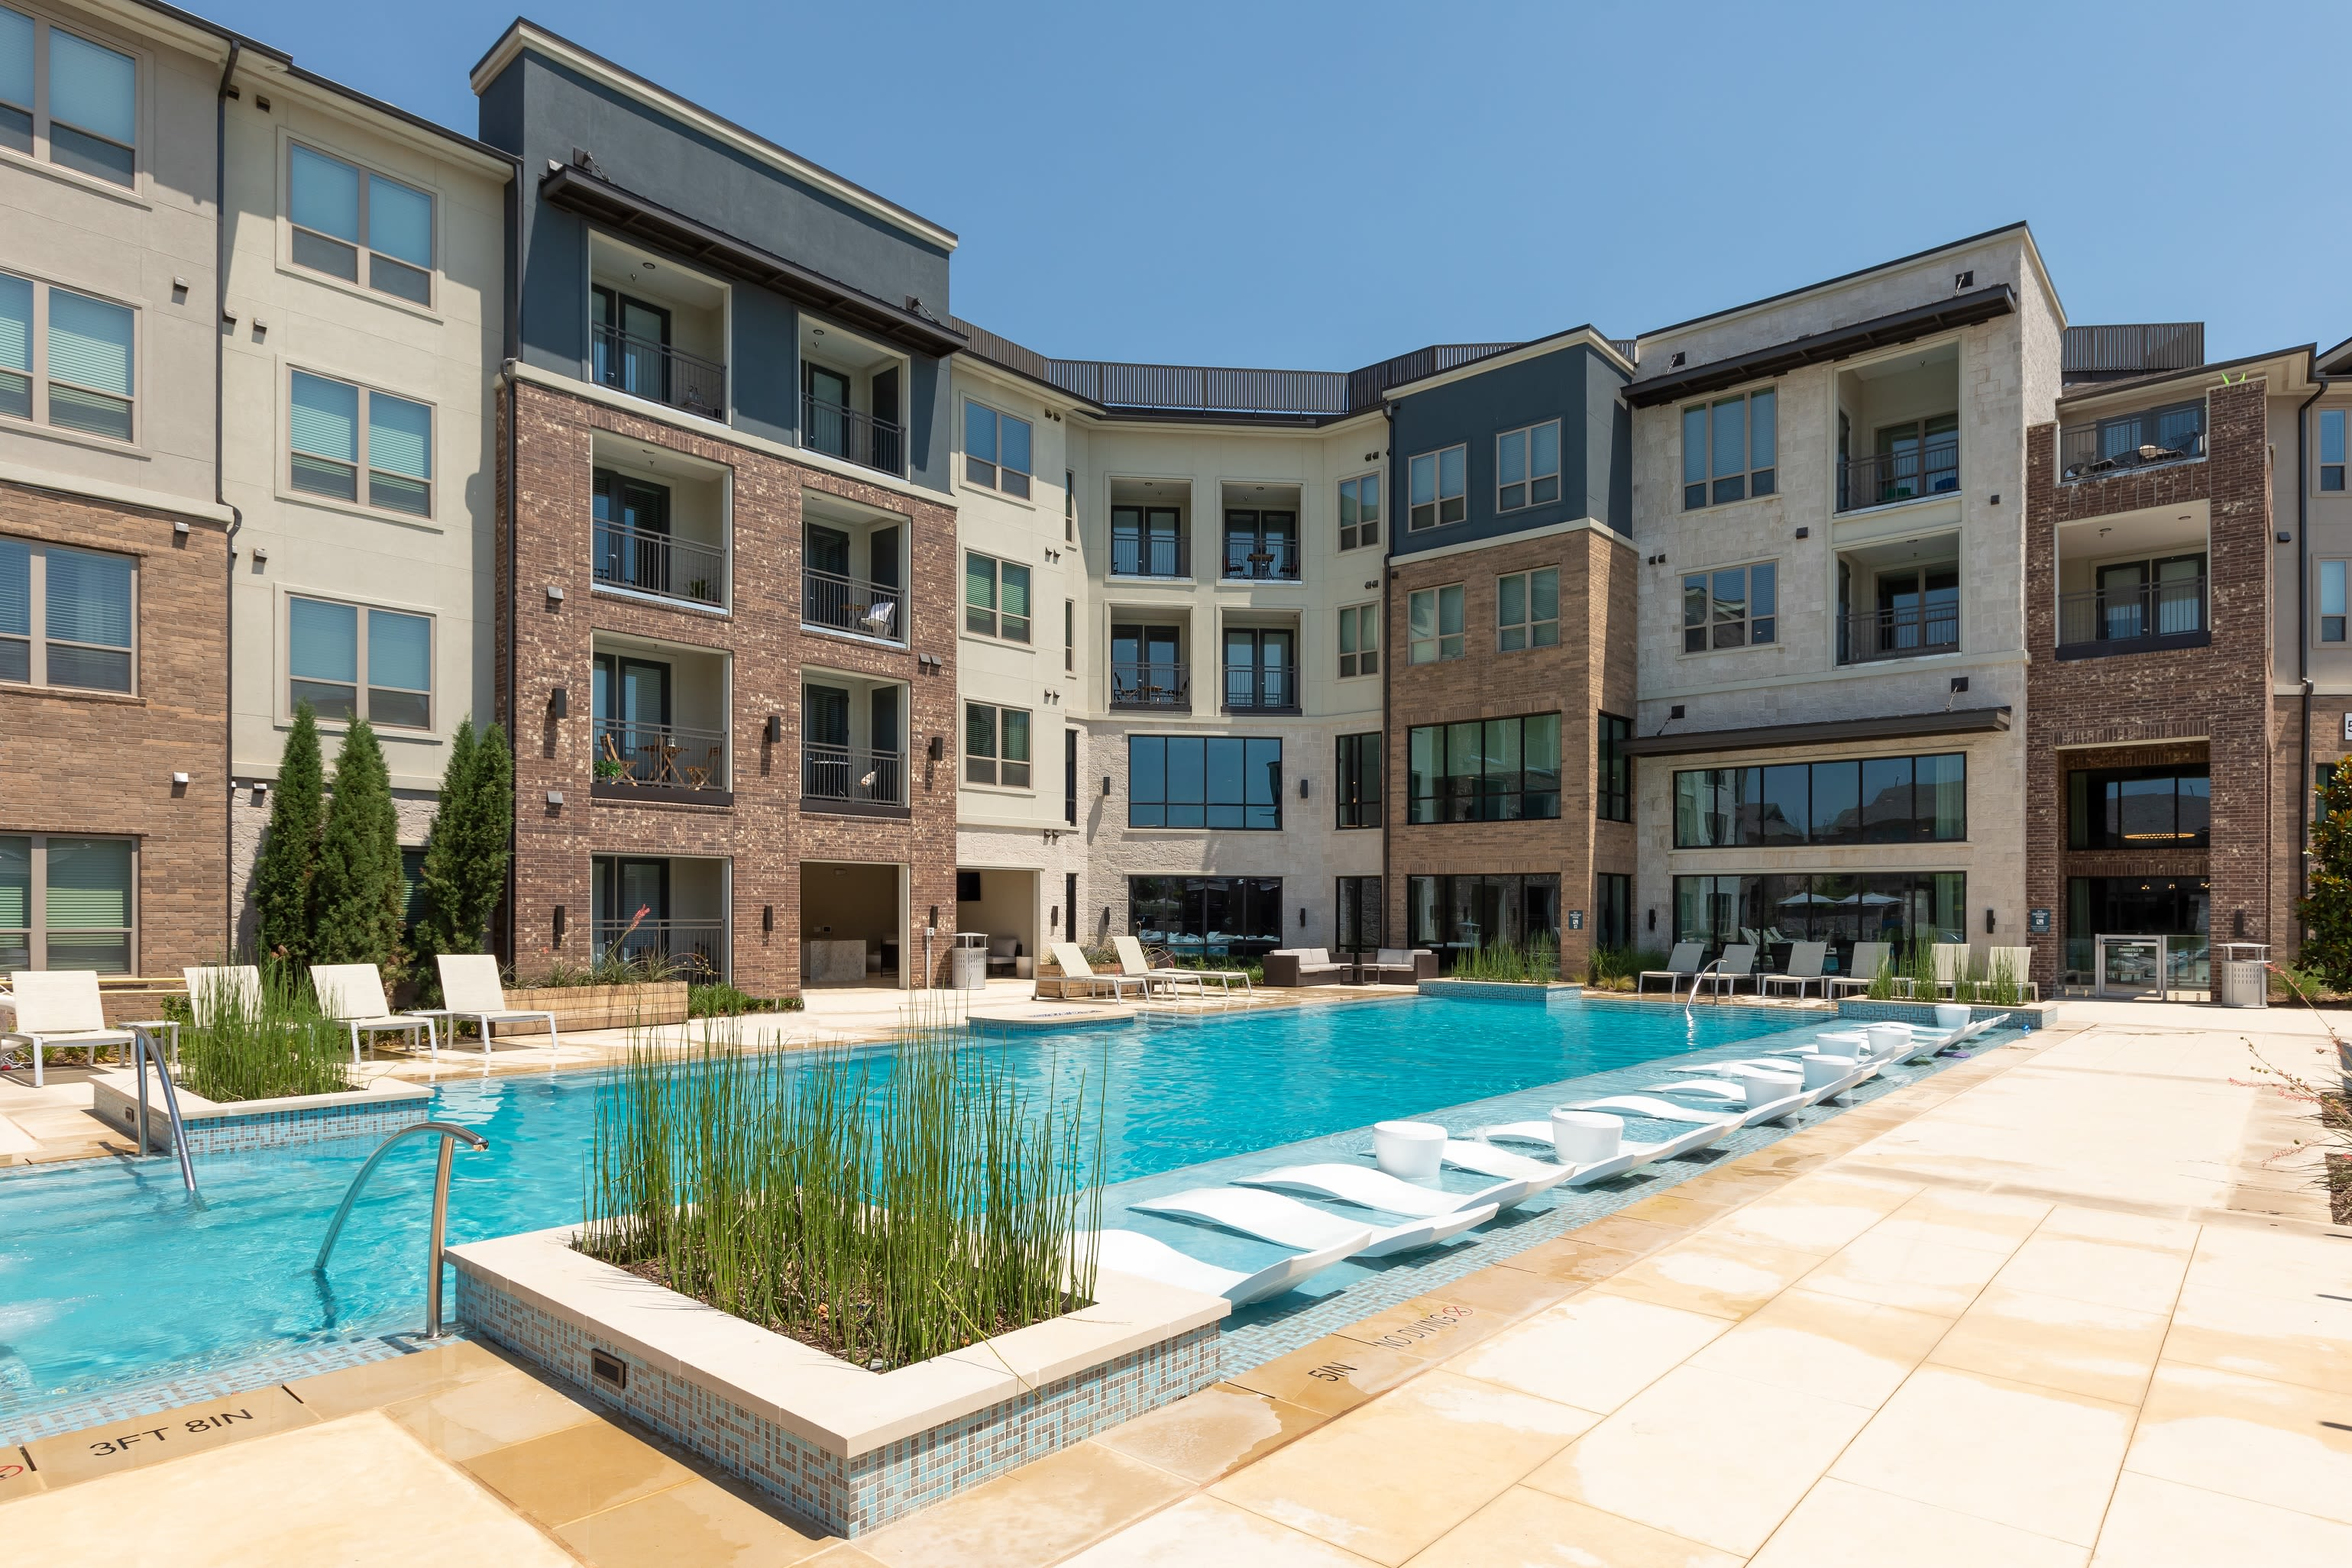 Poolside view at Domain at Founders Parc in Euless, Texas